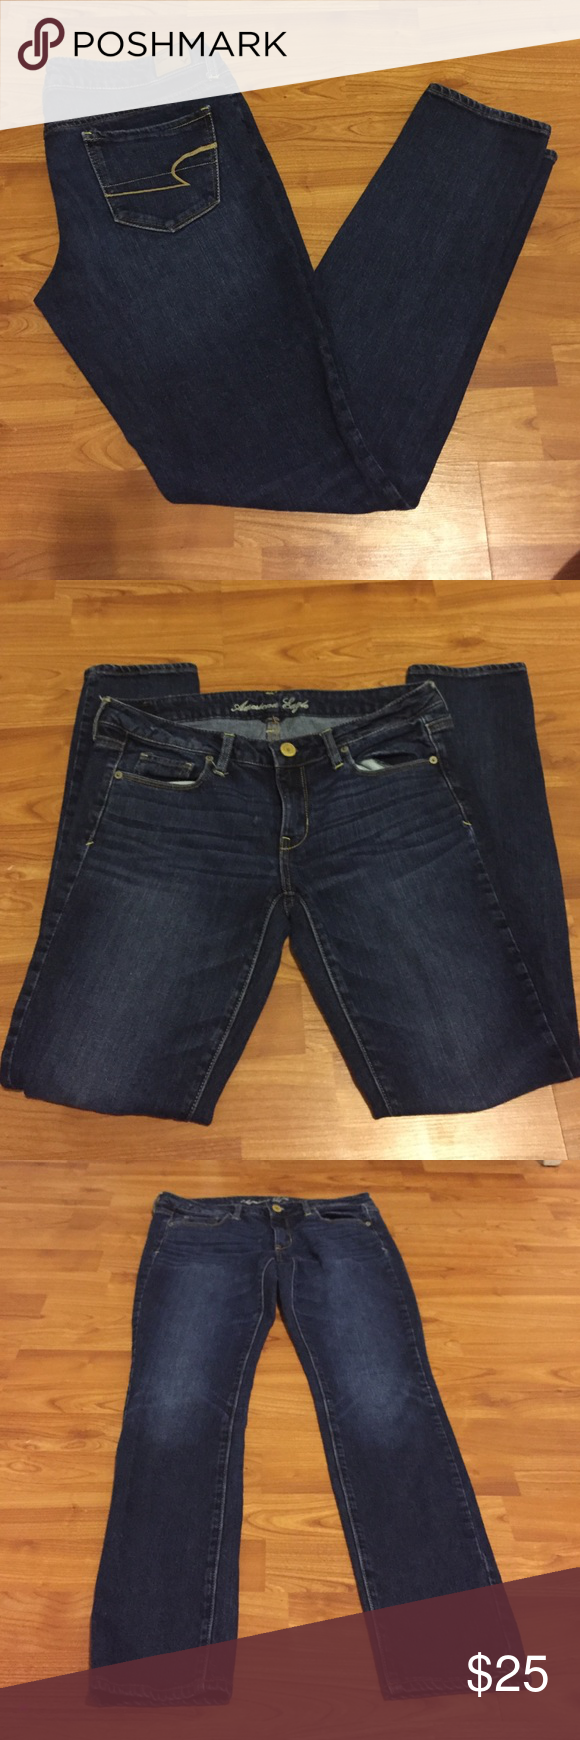 American Eagle Skinnies Beautiful dark wash AE skinny jeans size 8 regular length. No flaws :) offers welcomed and if you have any questions or would like more pictures just kindly comment :) American Eagle Outfitters Jeans Skinny